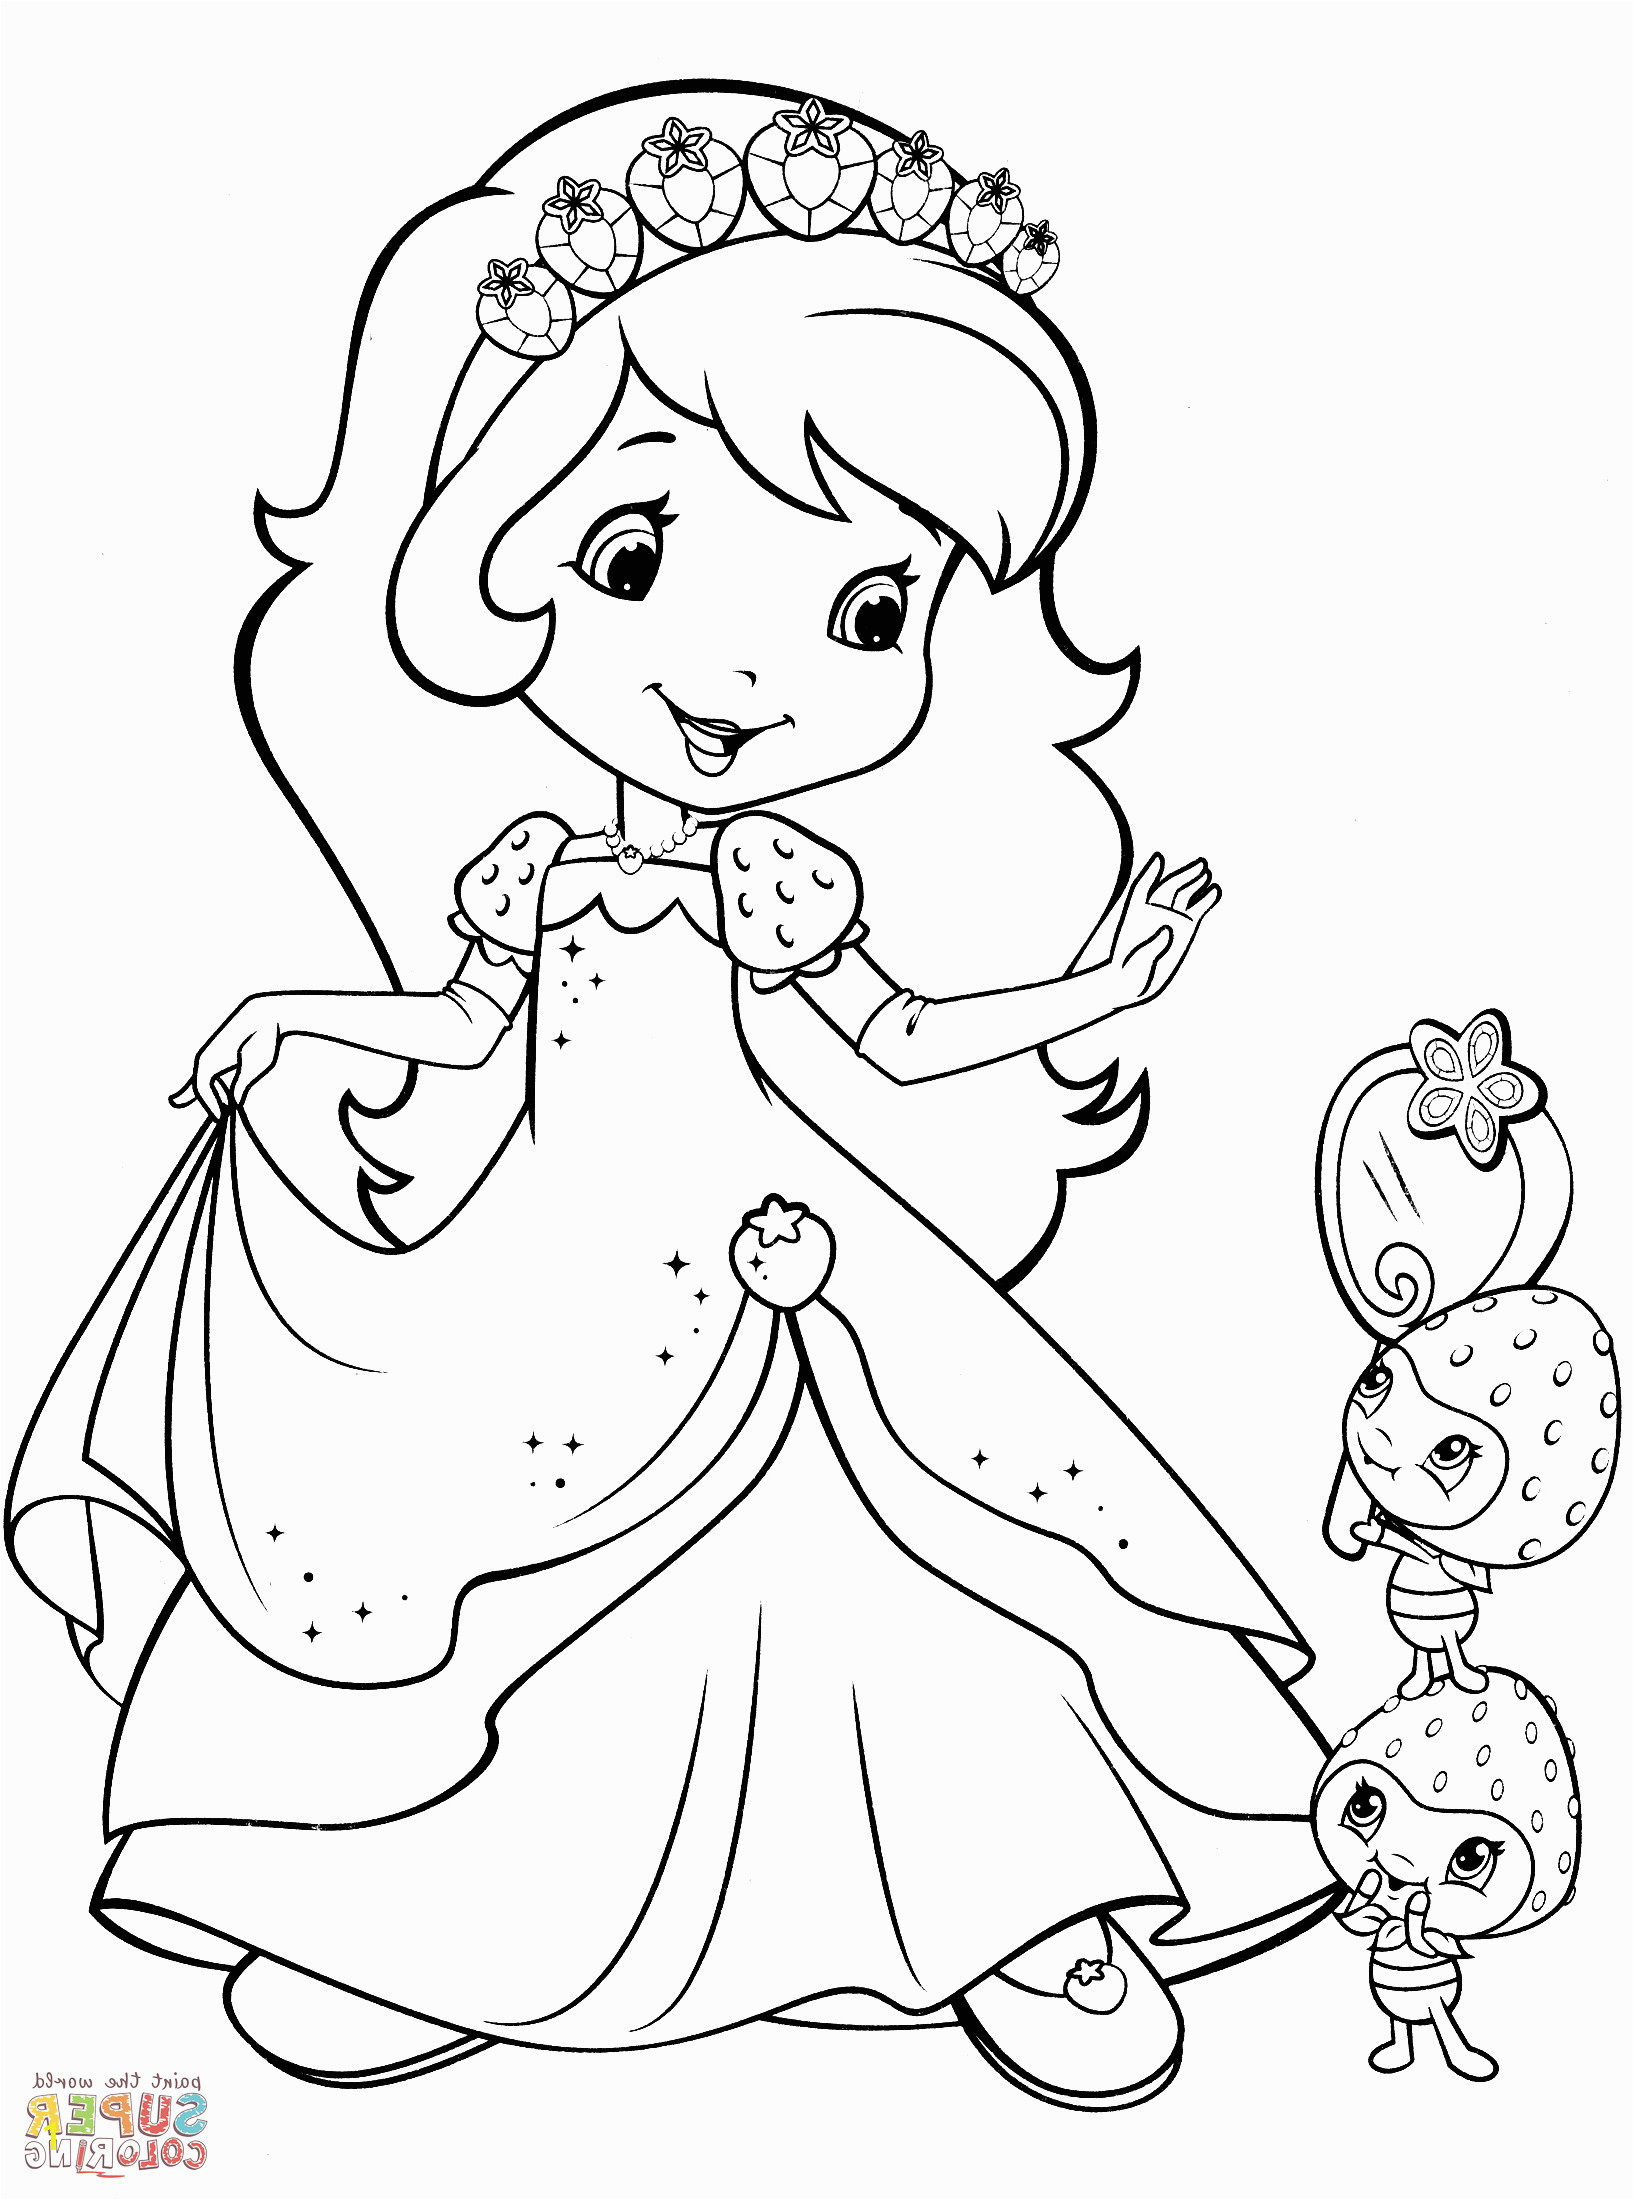 printable strawberry shortcake coloring page inspirational photos strawberry shortcake and berrykins coloring page of printable strawberry shortcake coloring page